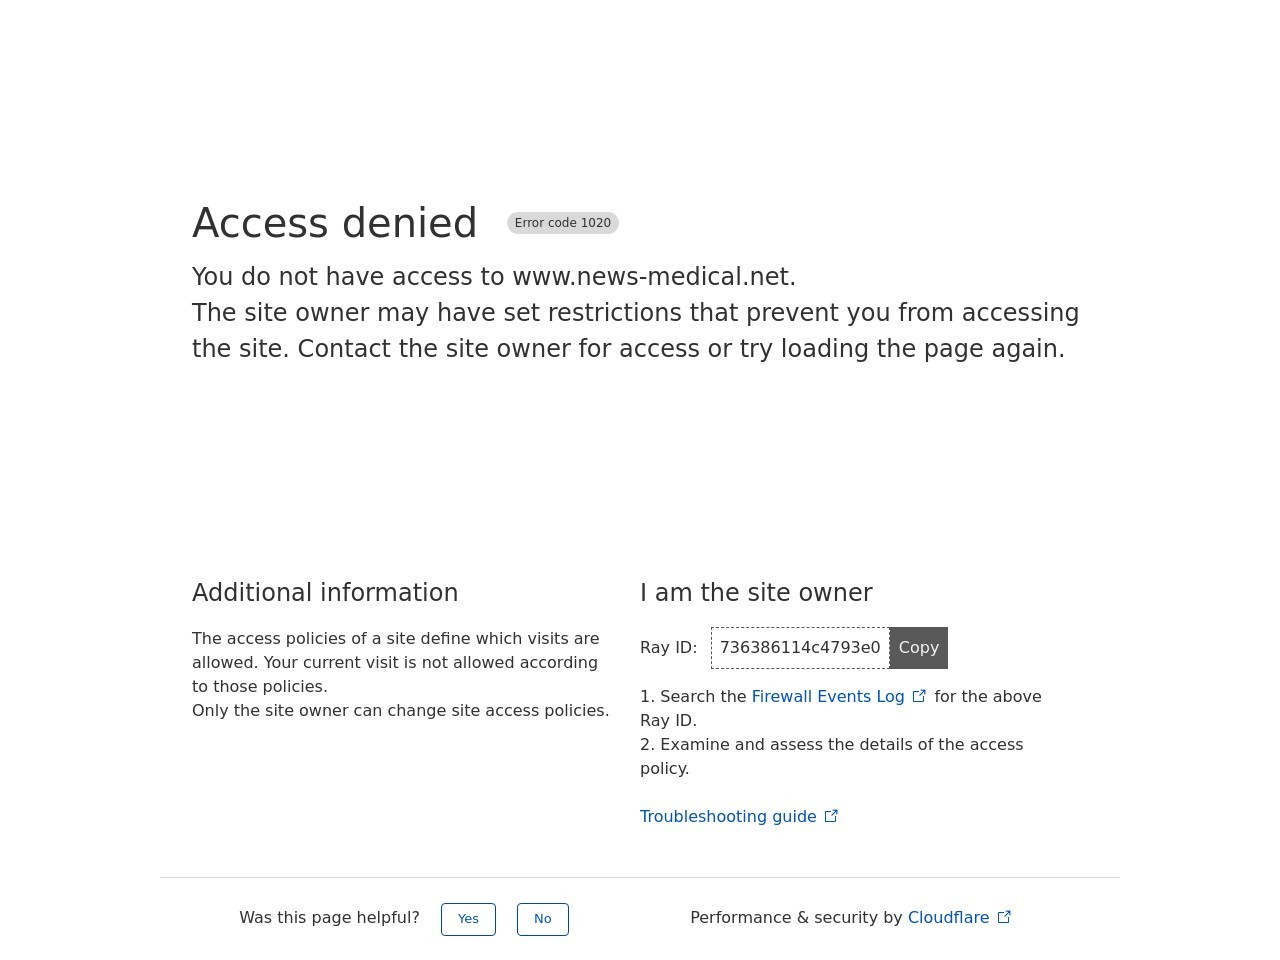 Loyola pediatric dermatologists now offer same-day appointments to see kids